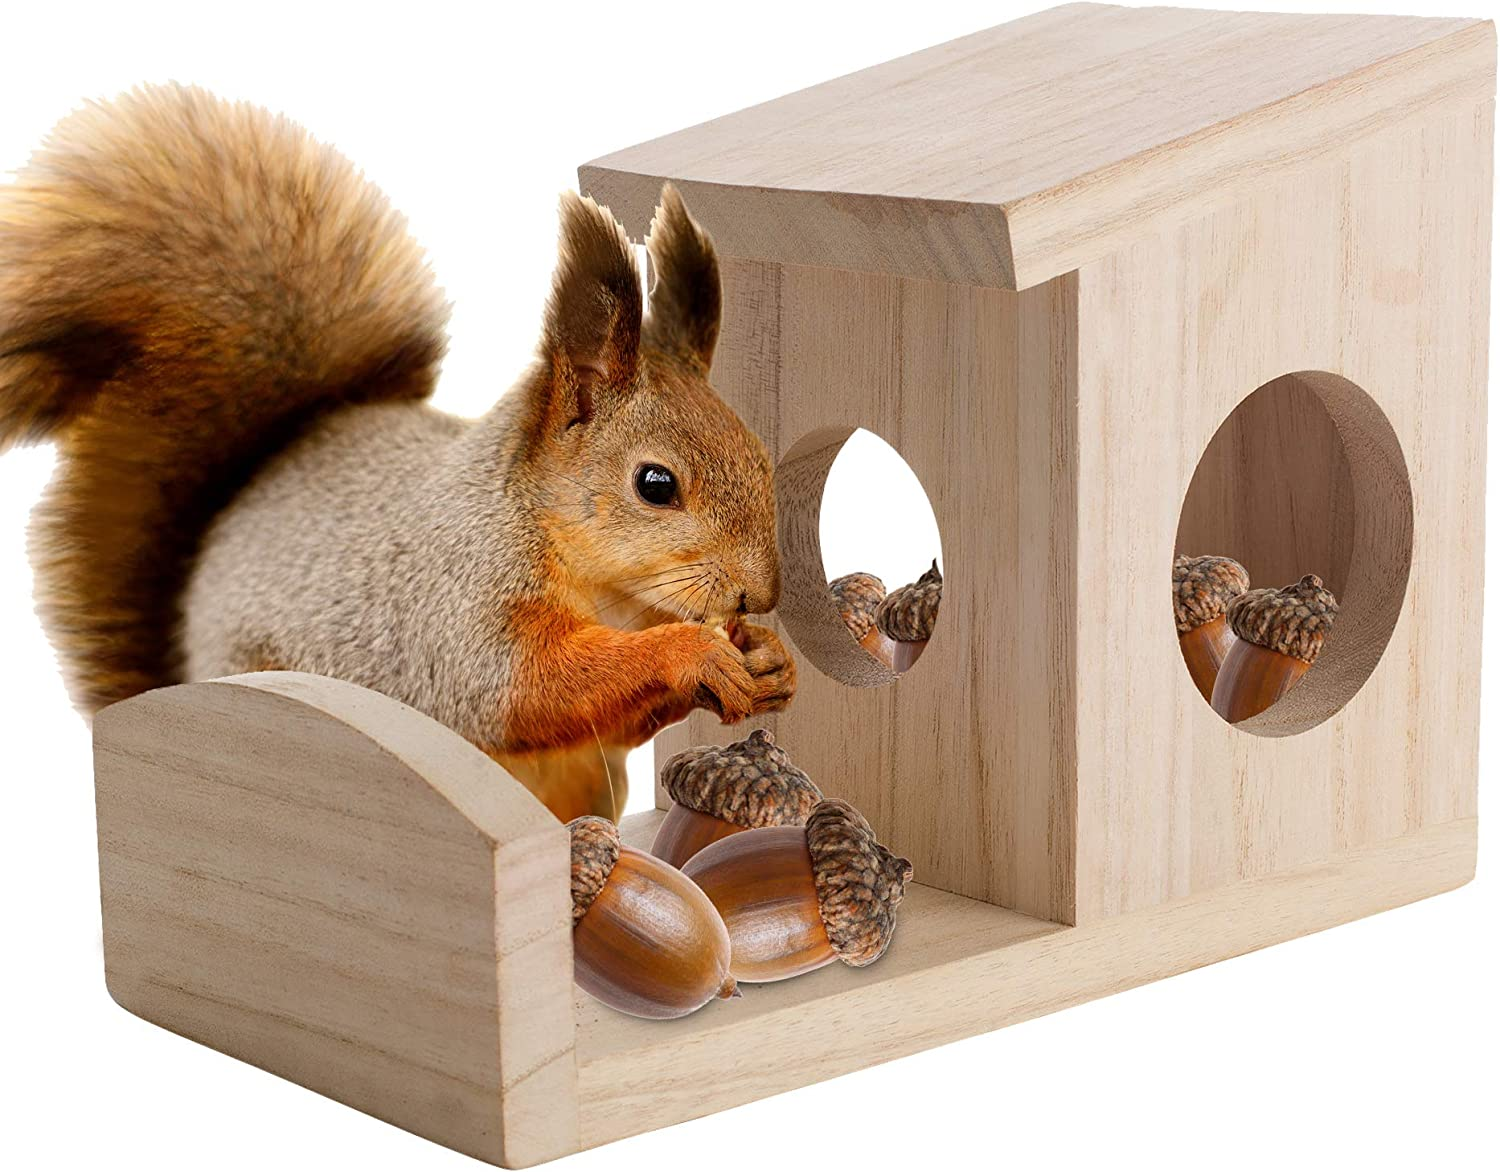 Squirrel Feeder for Outside - Environmentally Friendly Wood Squirrel Feeders for Outdoors That Hold Food, Nuts and Seeds - Squirrel Feeder Hangs Outdoors On Trees Fences Posts - by Nature's Hangout